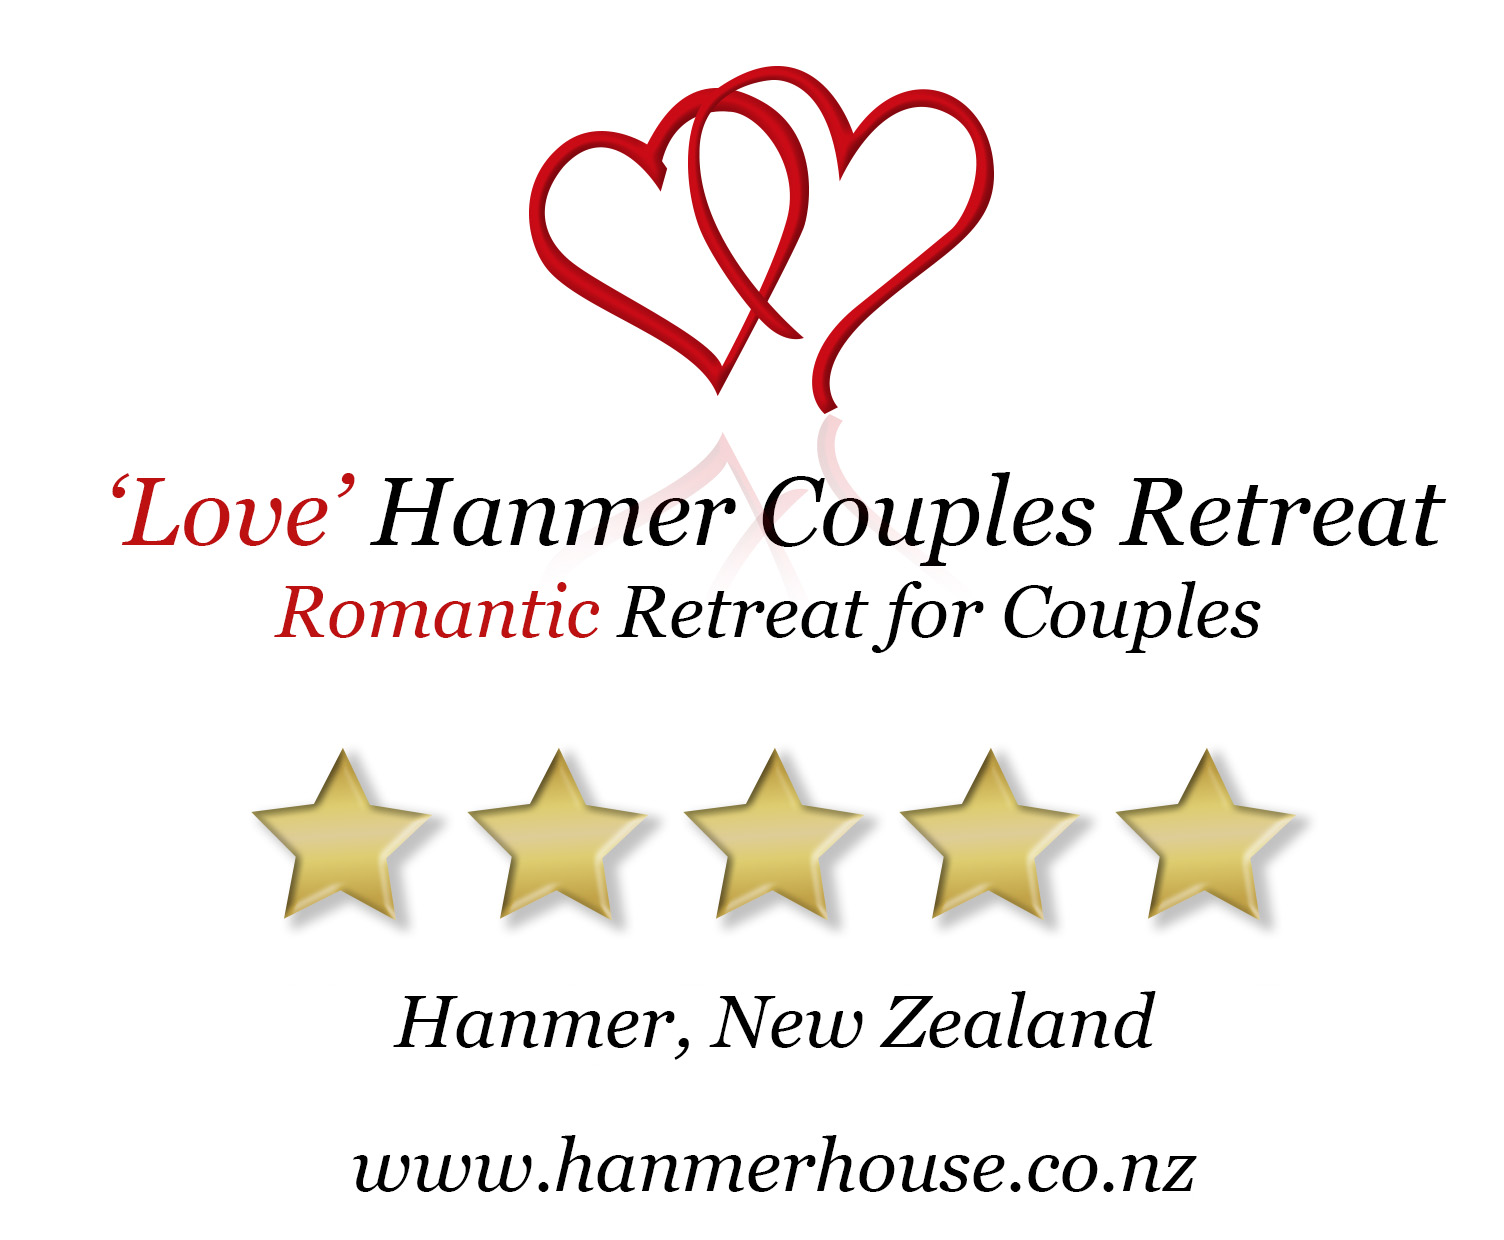 'Love' Hanmer Couples Retreat